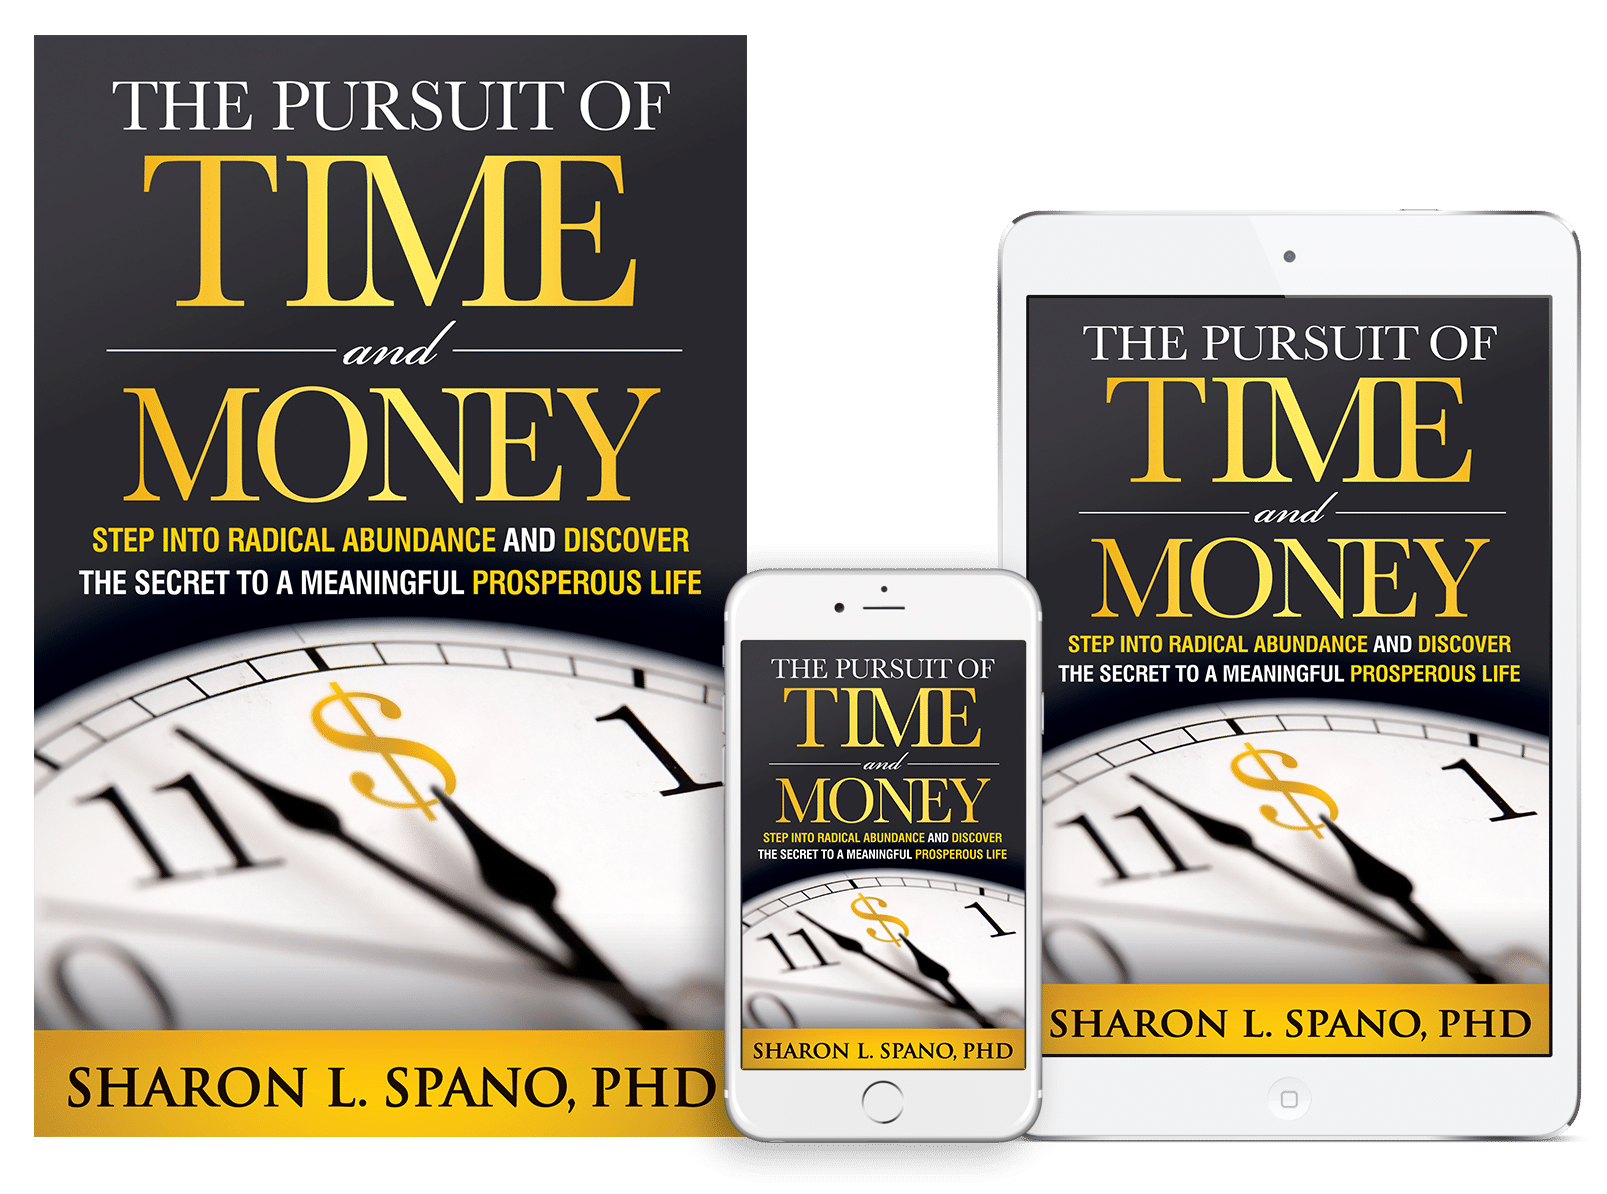 The Pursuit of Time and Money by Sharon Spano, PhD